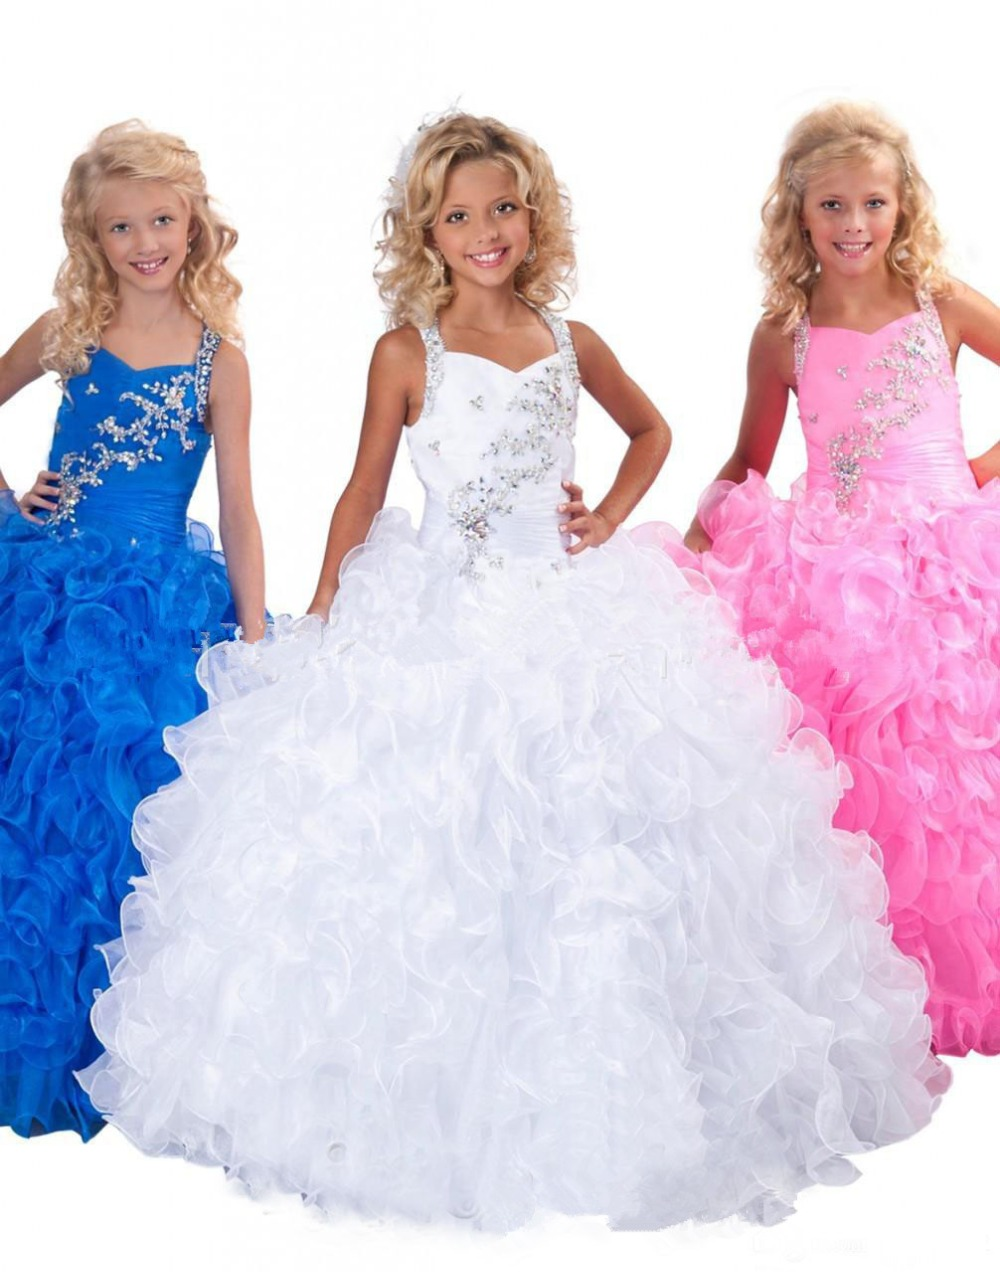 Princess Ball Gown Ruffles Flower Girl Dresses 2017 Cute Ball Gown Halter Summer Girls Pageant Dress for Weddings Party Gown